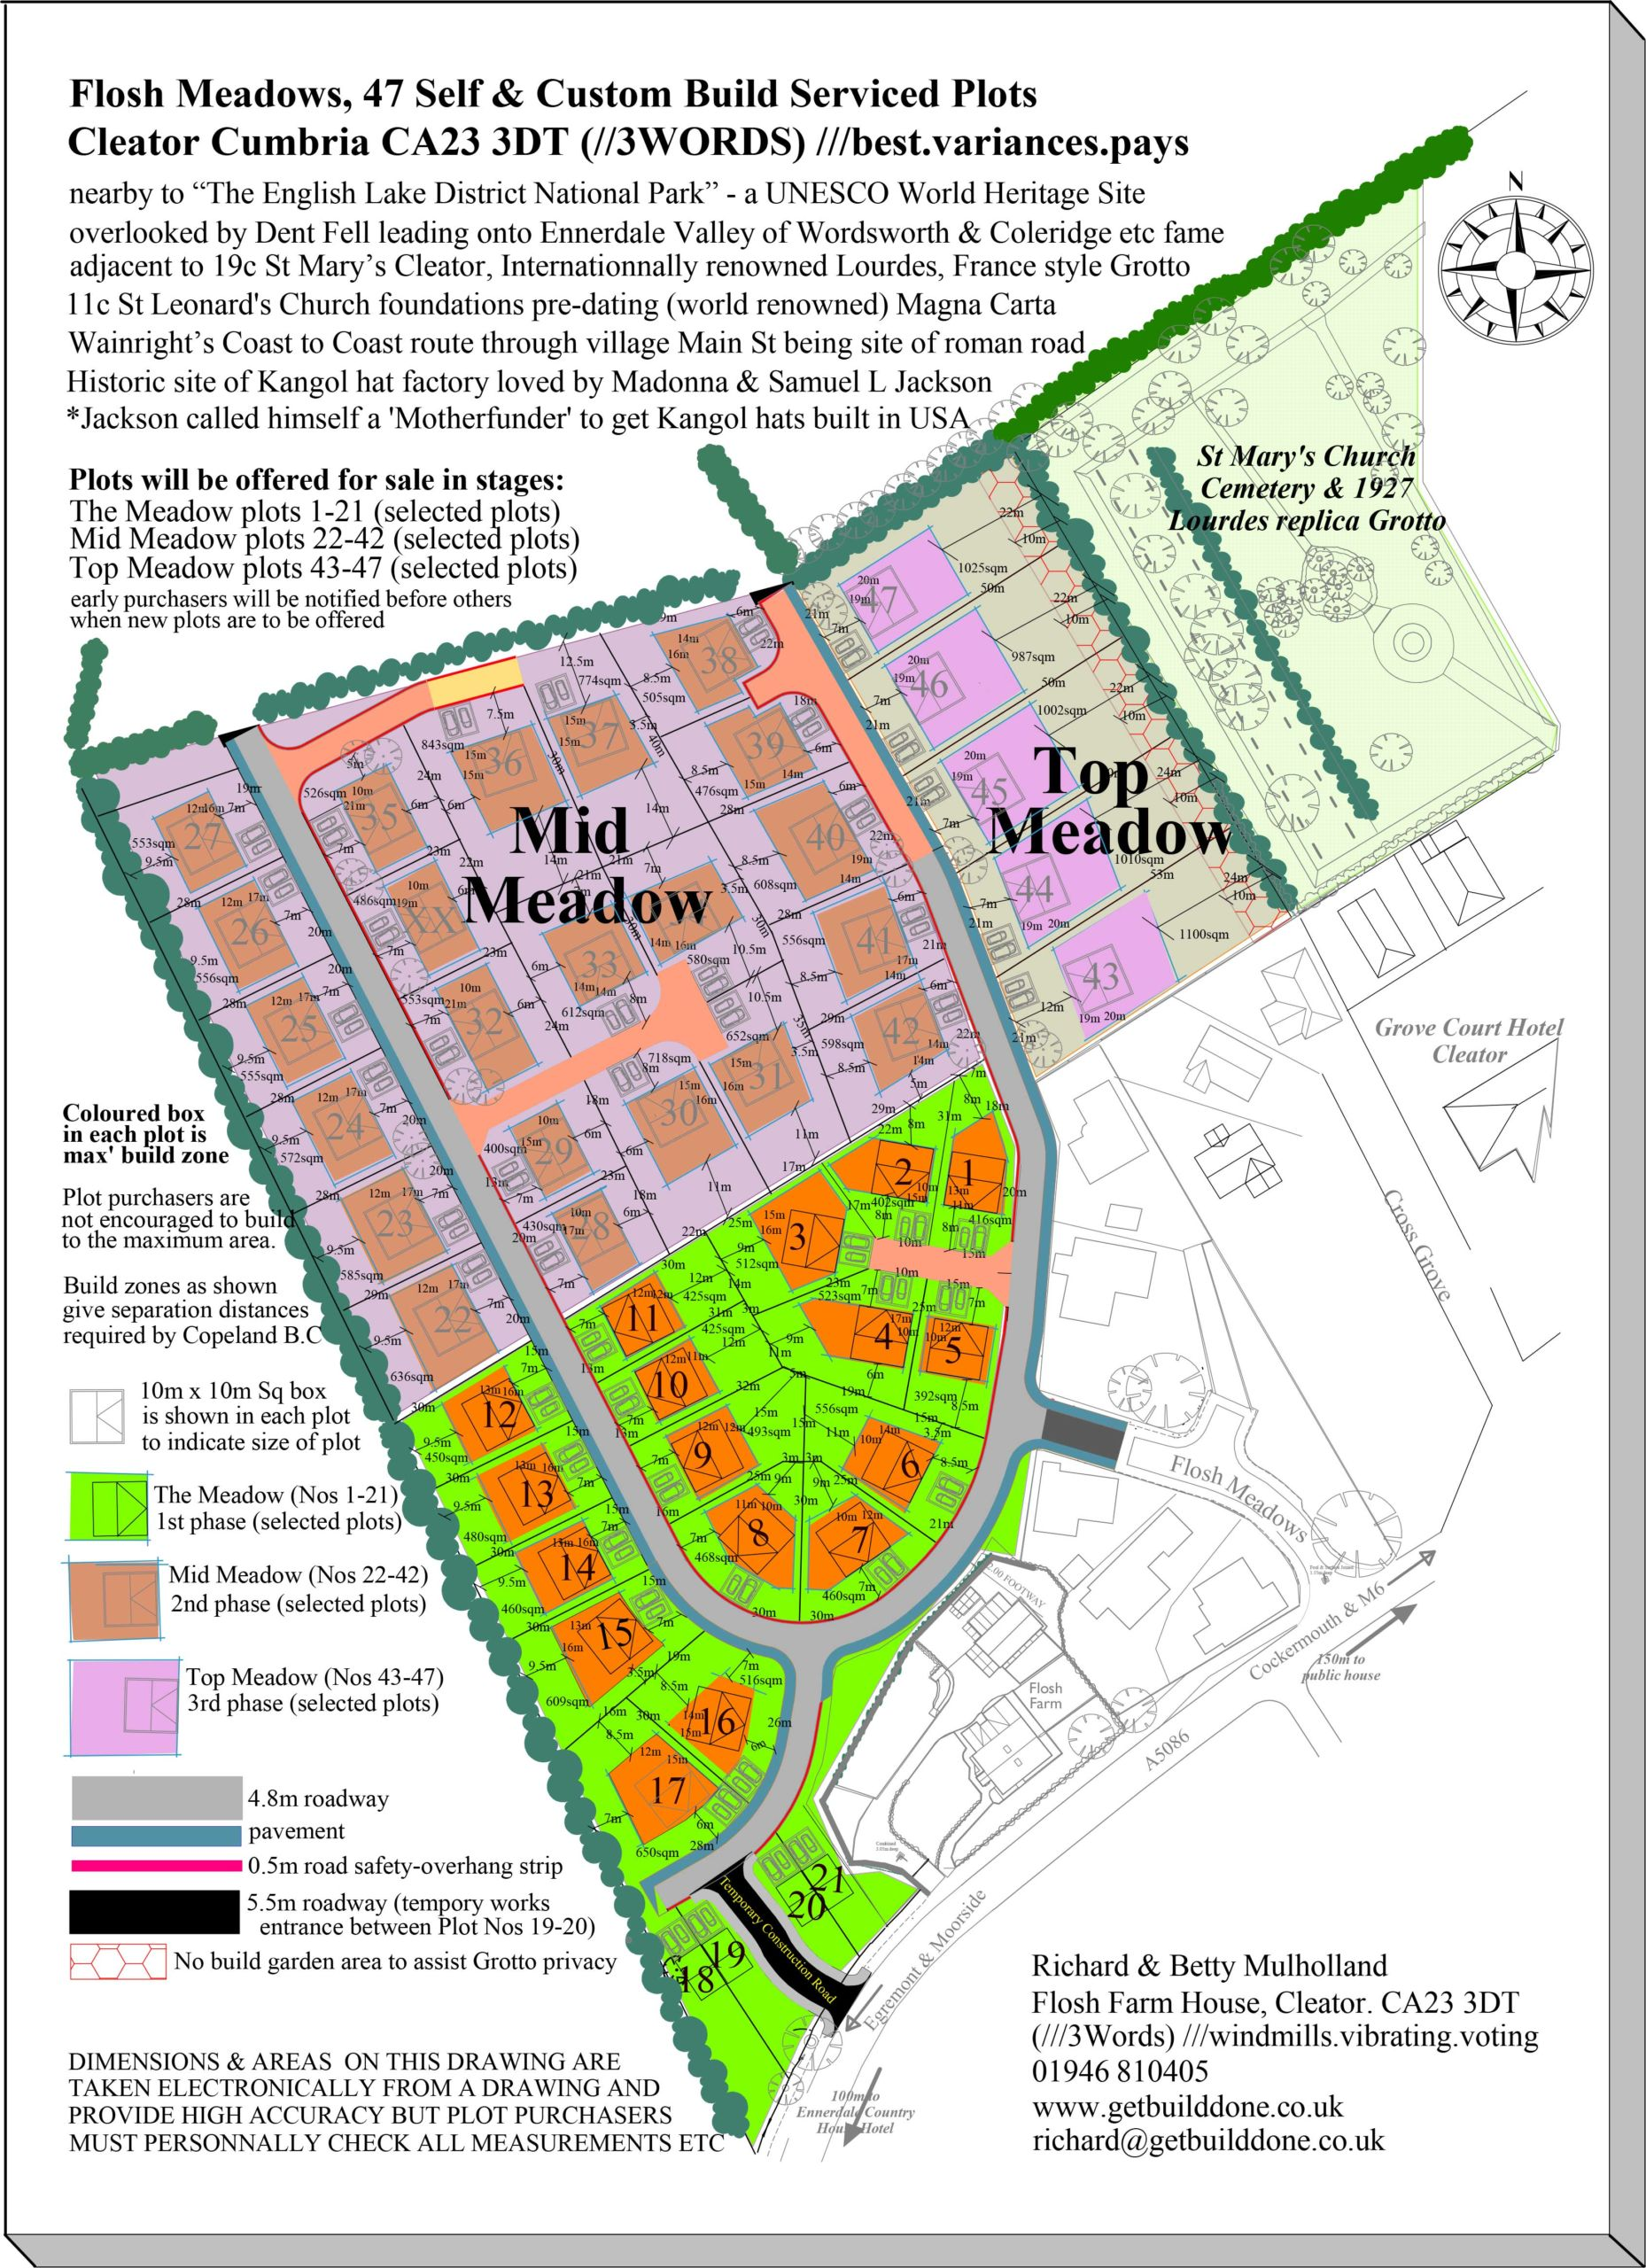 Flosh Meadows Cleator self-build and custom build serviced plots